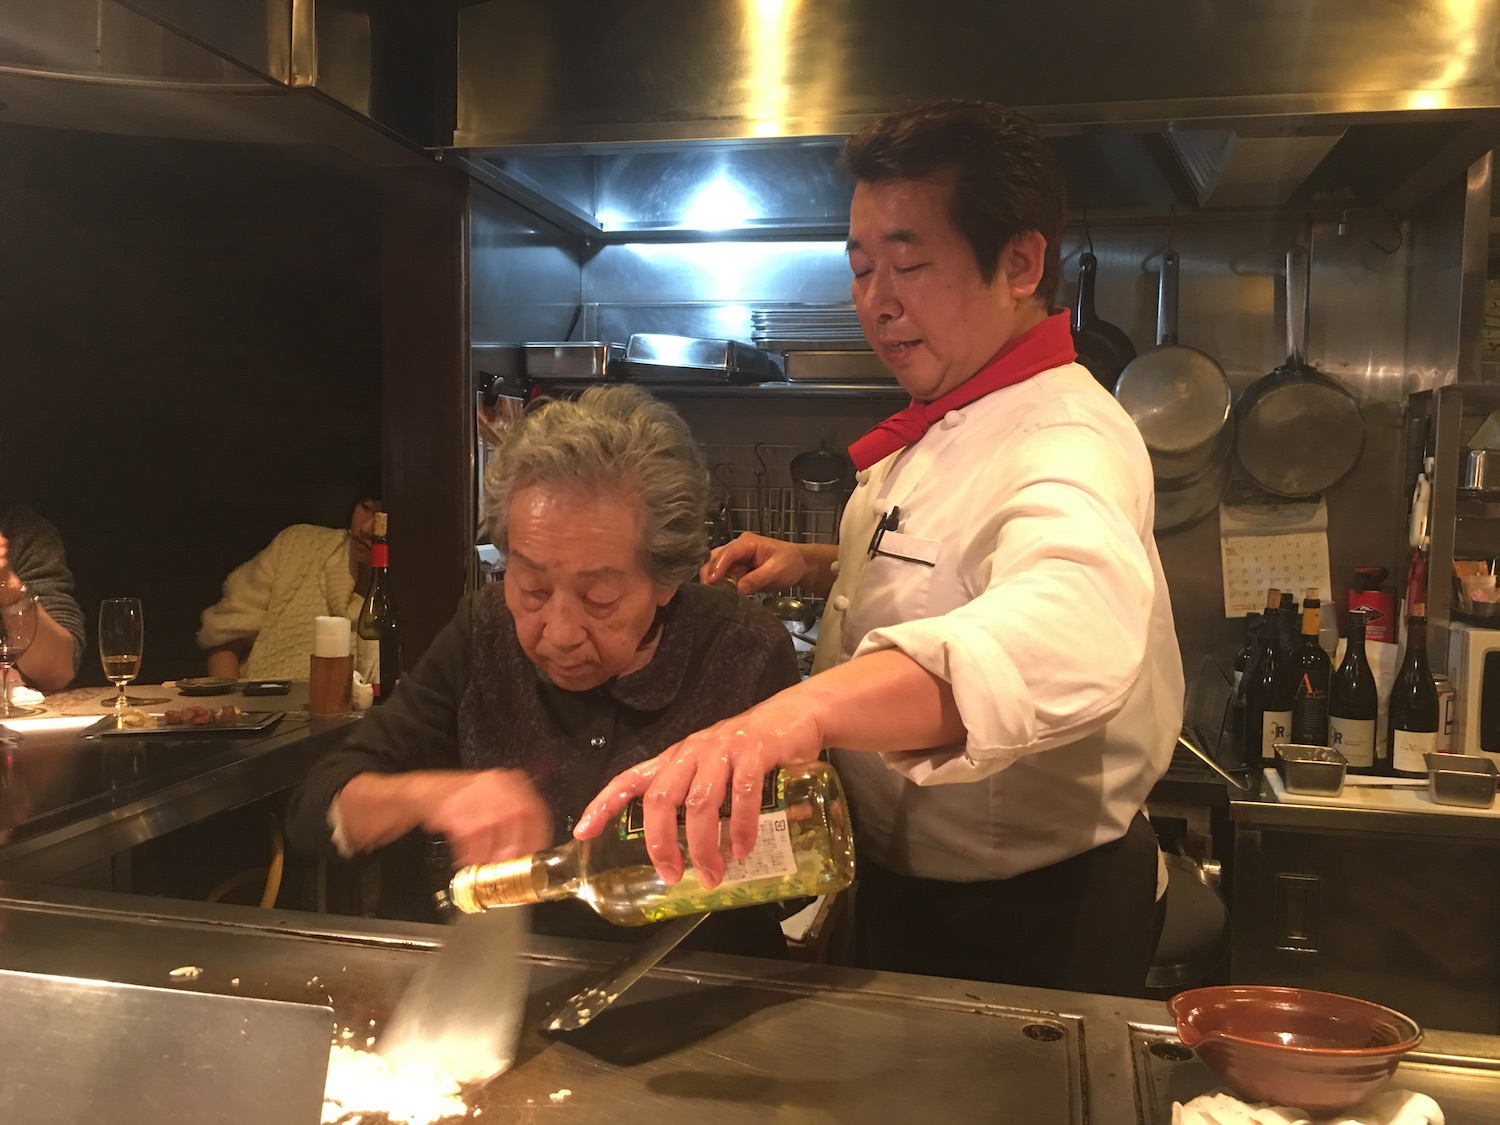 A 90-year-old grandmother and her chef son STILL WORKING at the family restaurant in Kobe. This was the best beef ever. Period. I got along so well with the chef, he ended up bringing me to his favorite Izakaya (japanese bar) where we drank tons and tons of sake and shared local dishes to our hearts content. The kindness in Japanese people is totally unparalleled in my experience.